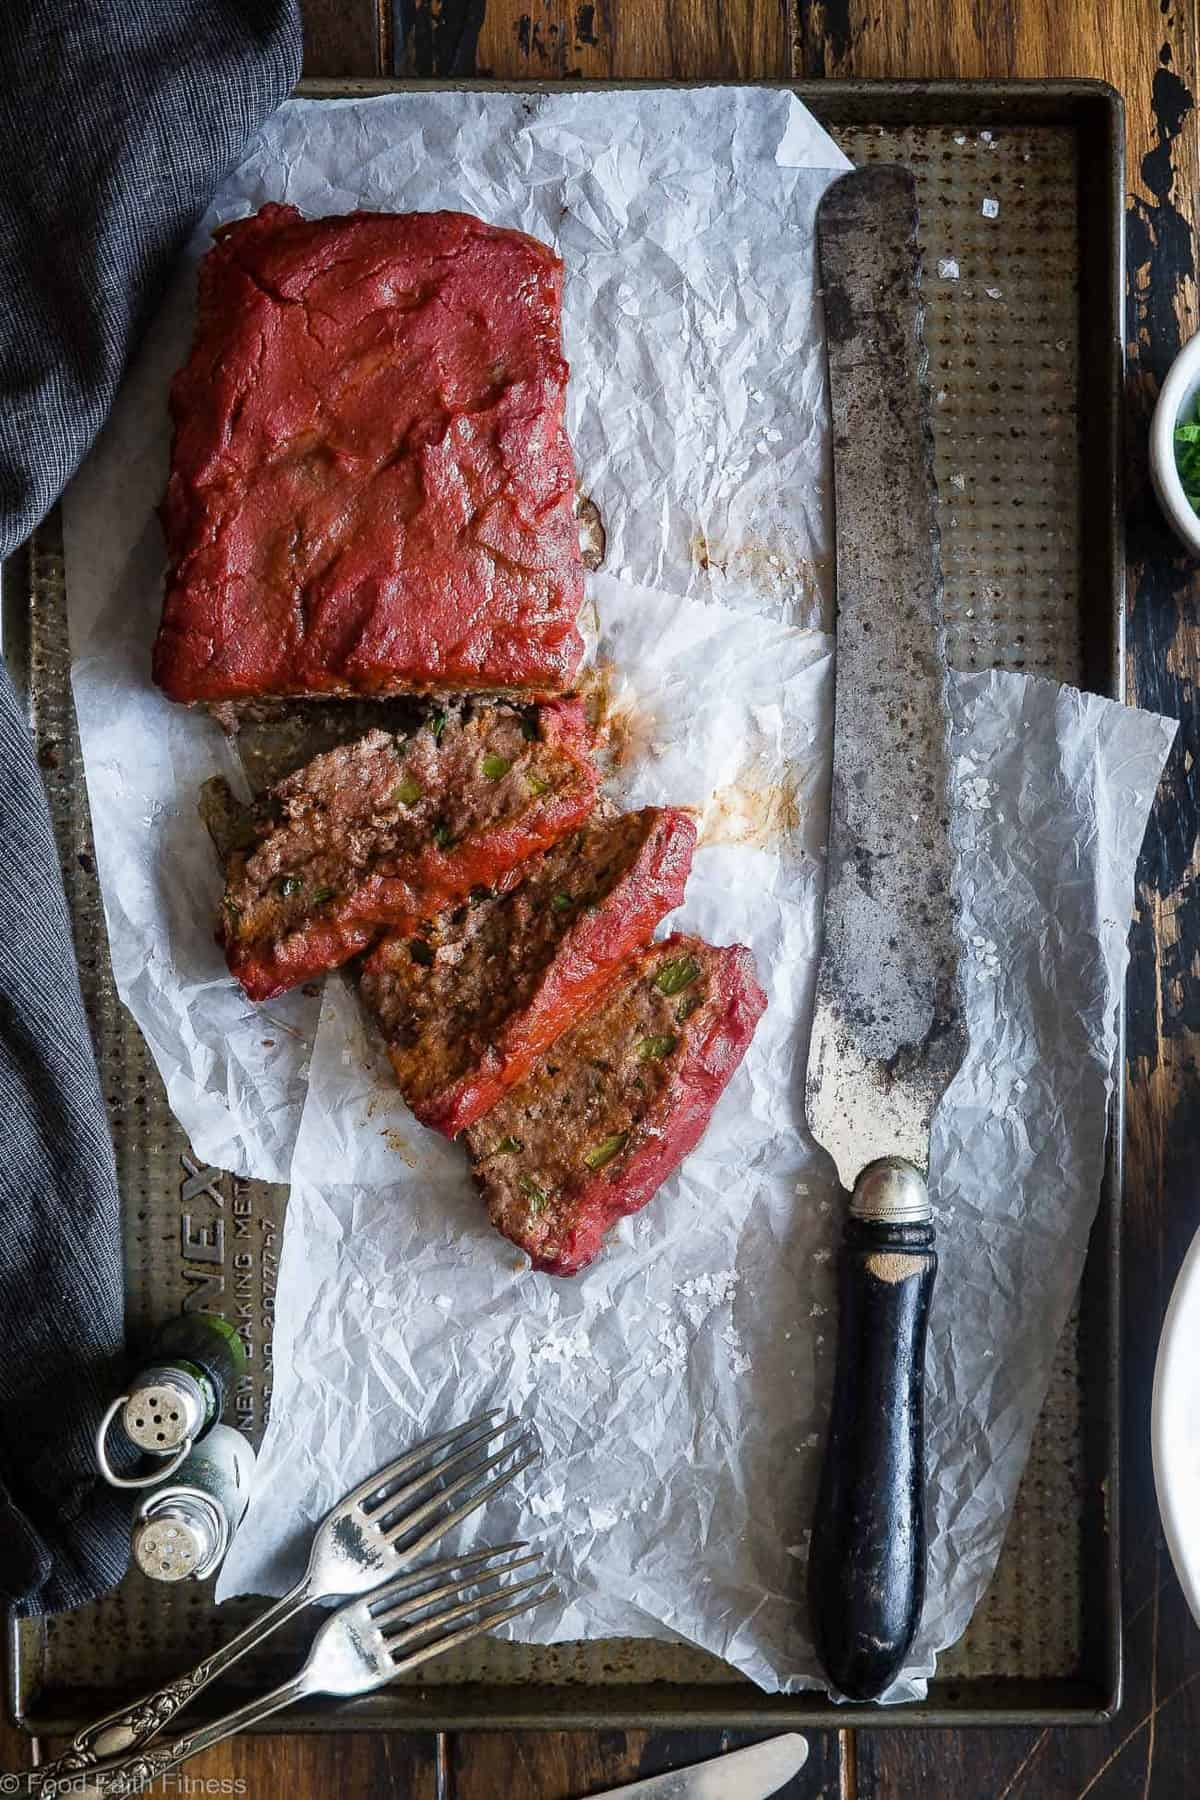 Easy Low Carb Paleo Meatloaf -This healthy Paleo Meatloaf is a family-friendly weeknight dinner that's gluten/grain/dairy/sugar free and whole30 compliant! Only 210 calories and picky eater approved! | #Foodfaithfitness | #Paleo #Whole30 #Keto #Glutenfree #LowCarb